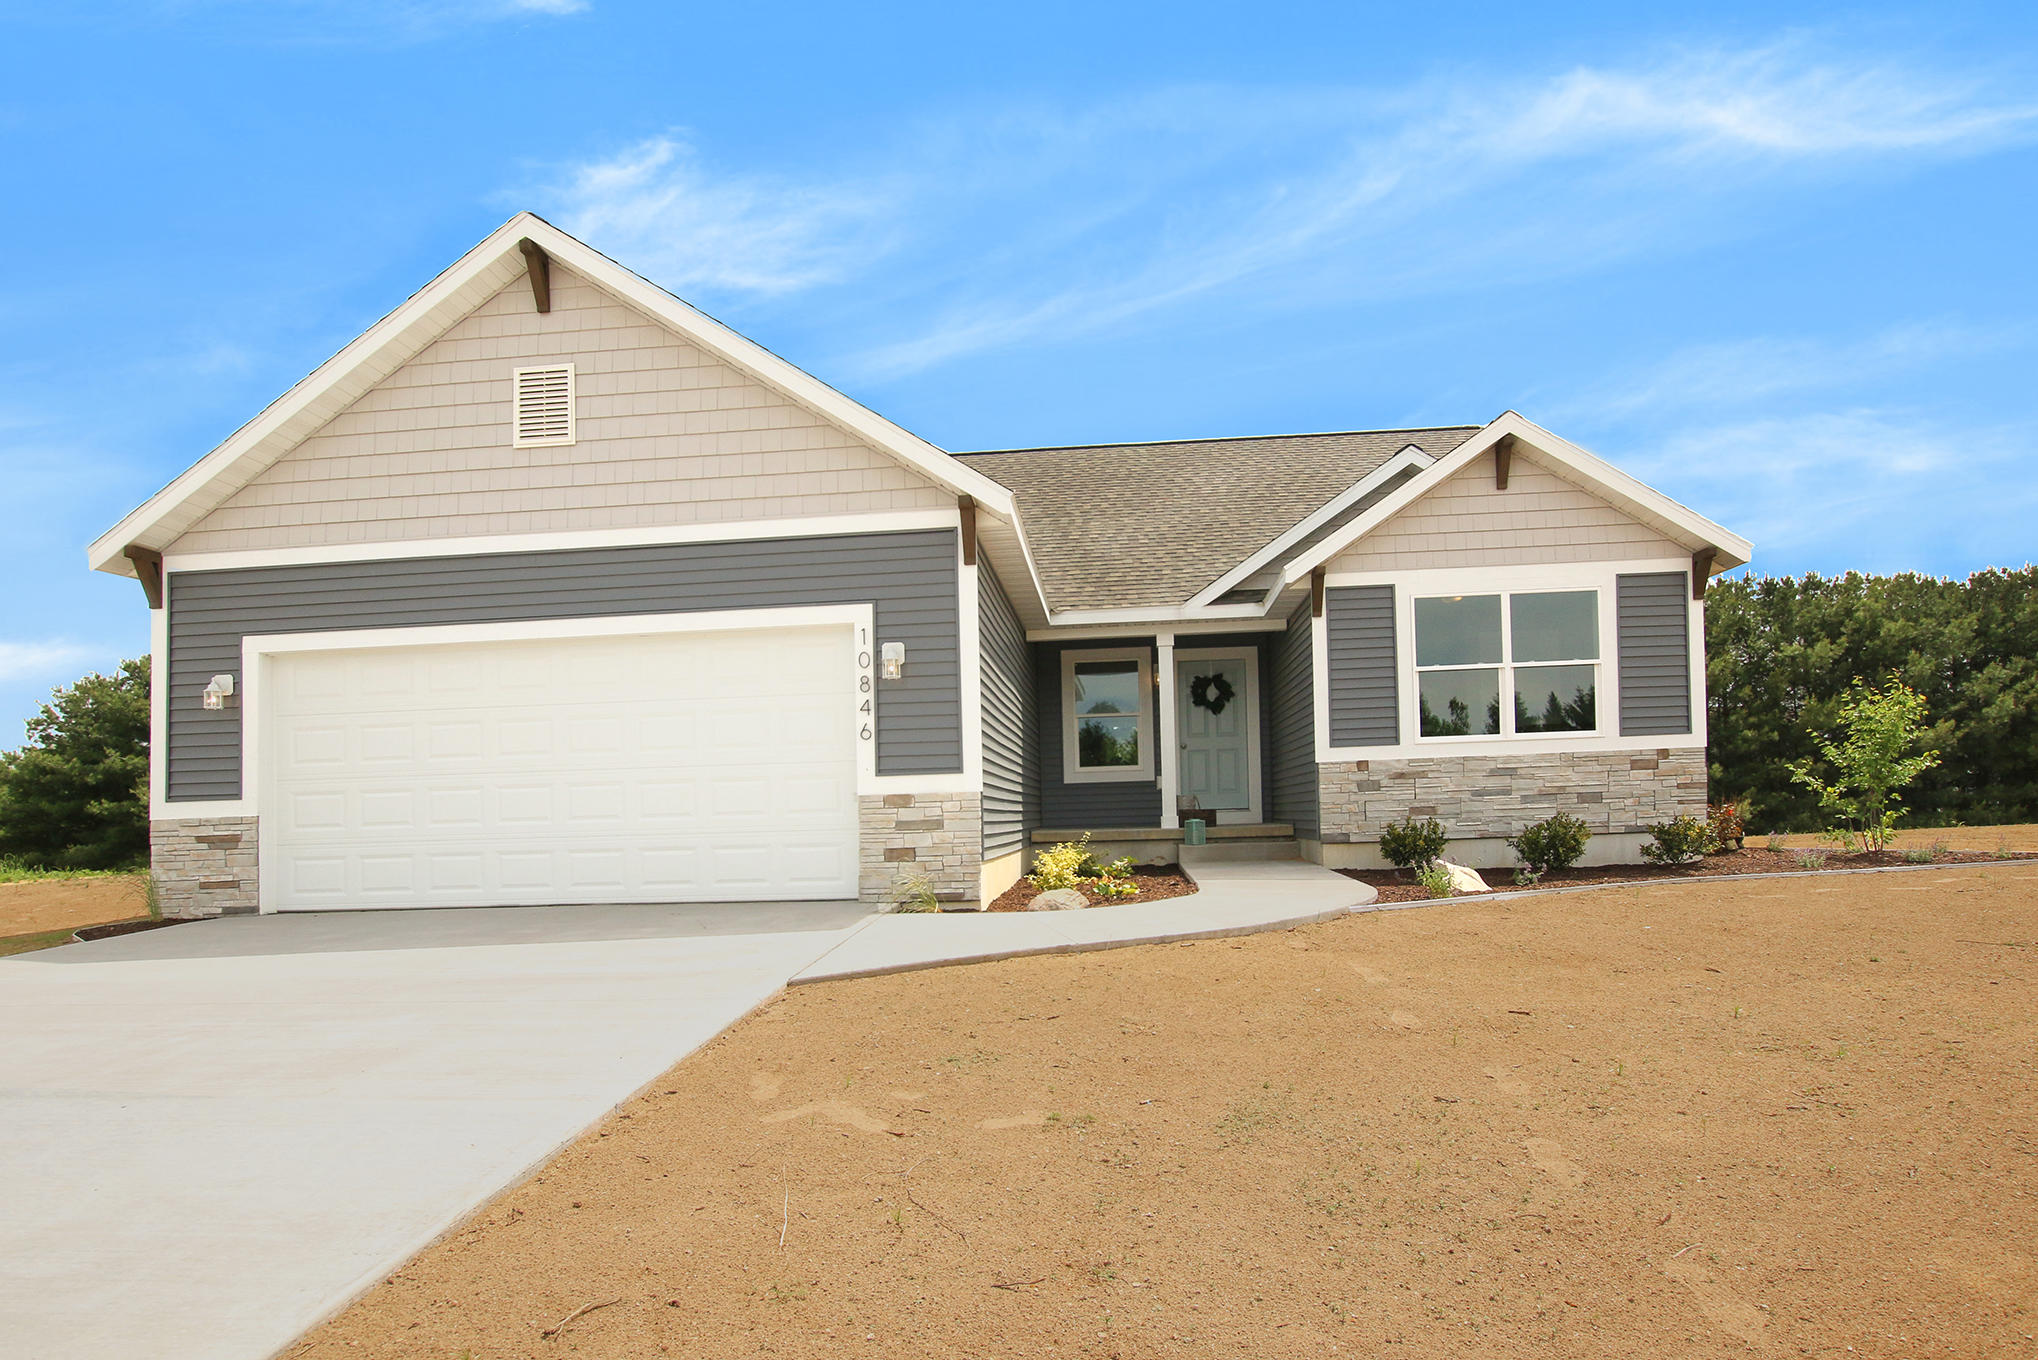 10856 Pine Bow Ct For Sale - West Olive, MI | Trulia